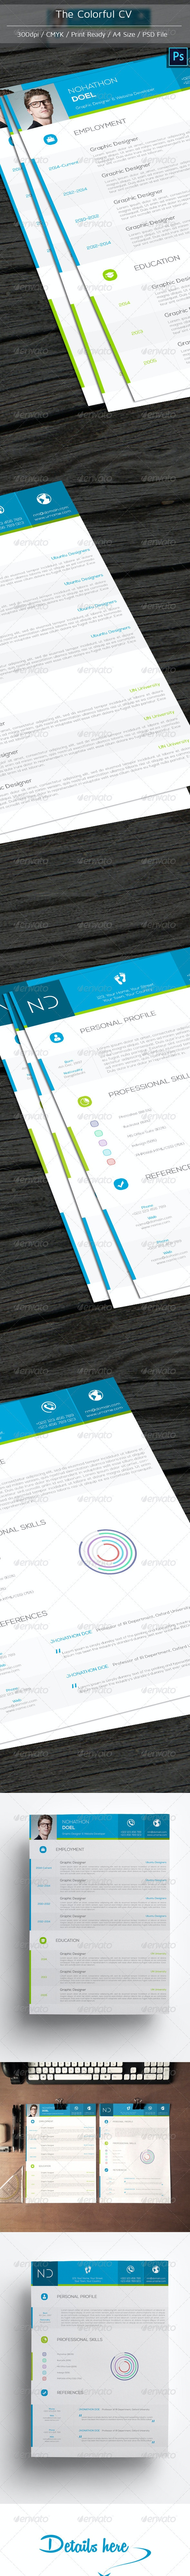 The Colorful CV - Resumes Stationery